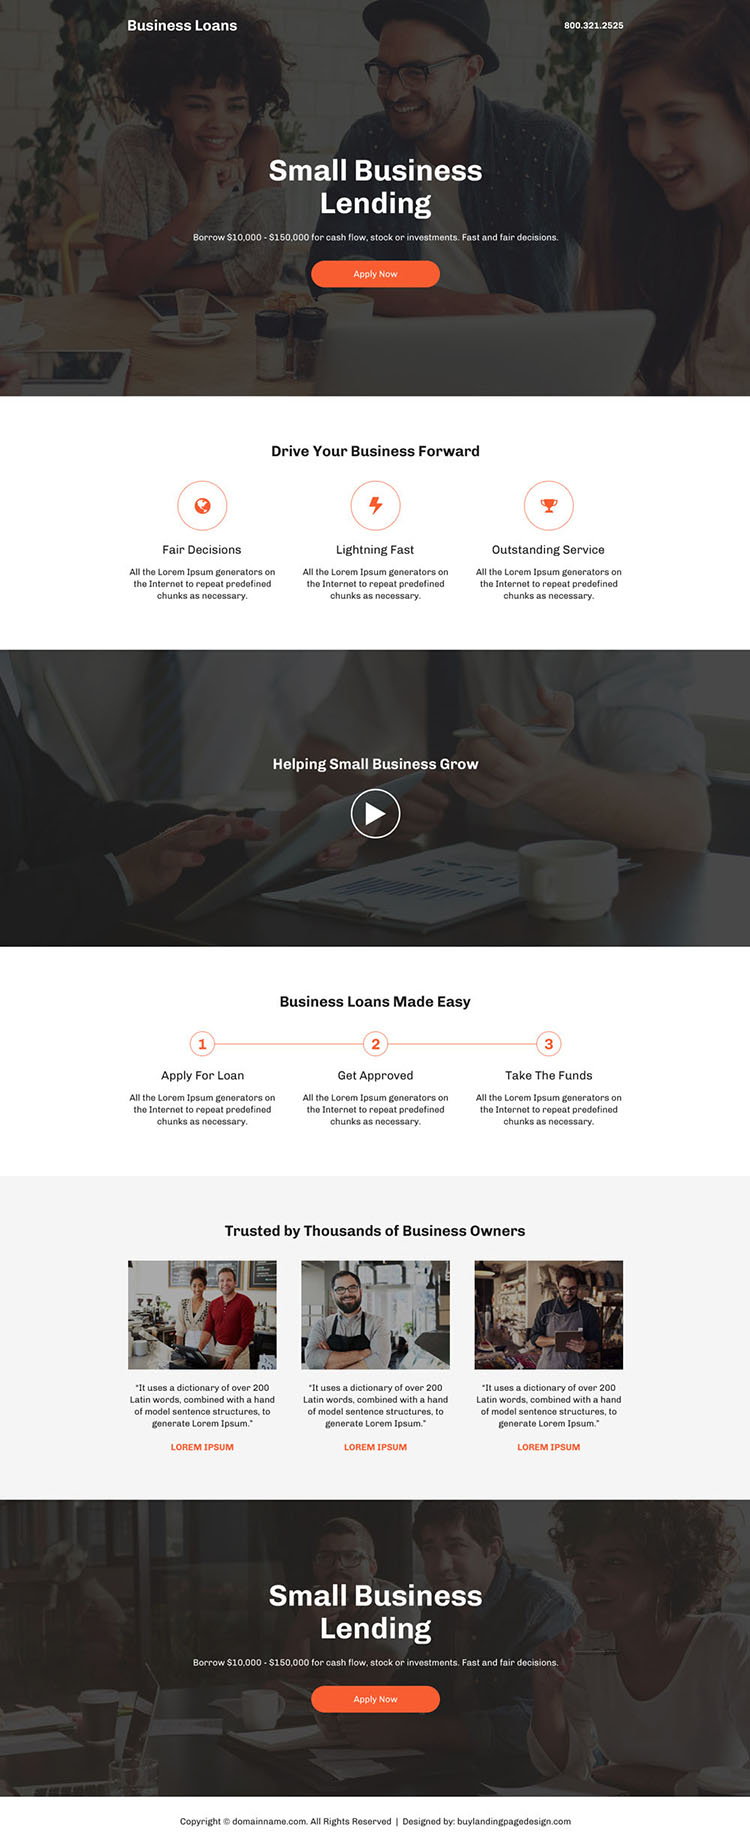 small business lending professional landing page design